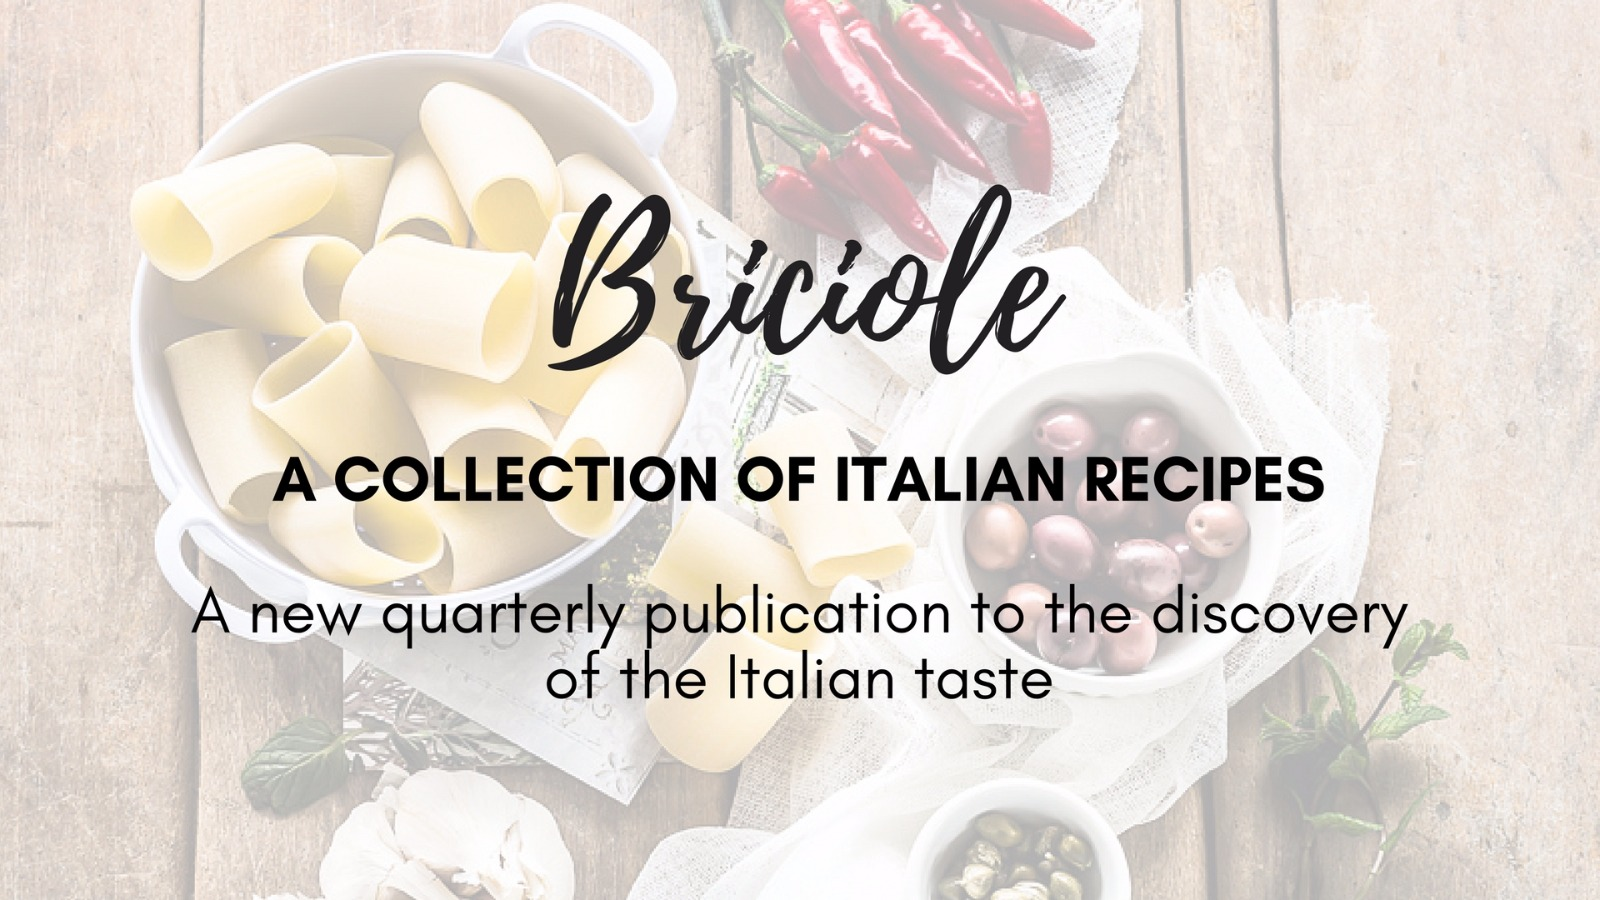 A delicious Italian recipes ebook. A new quarterly publication to the discovery of the Italian taste.